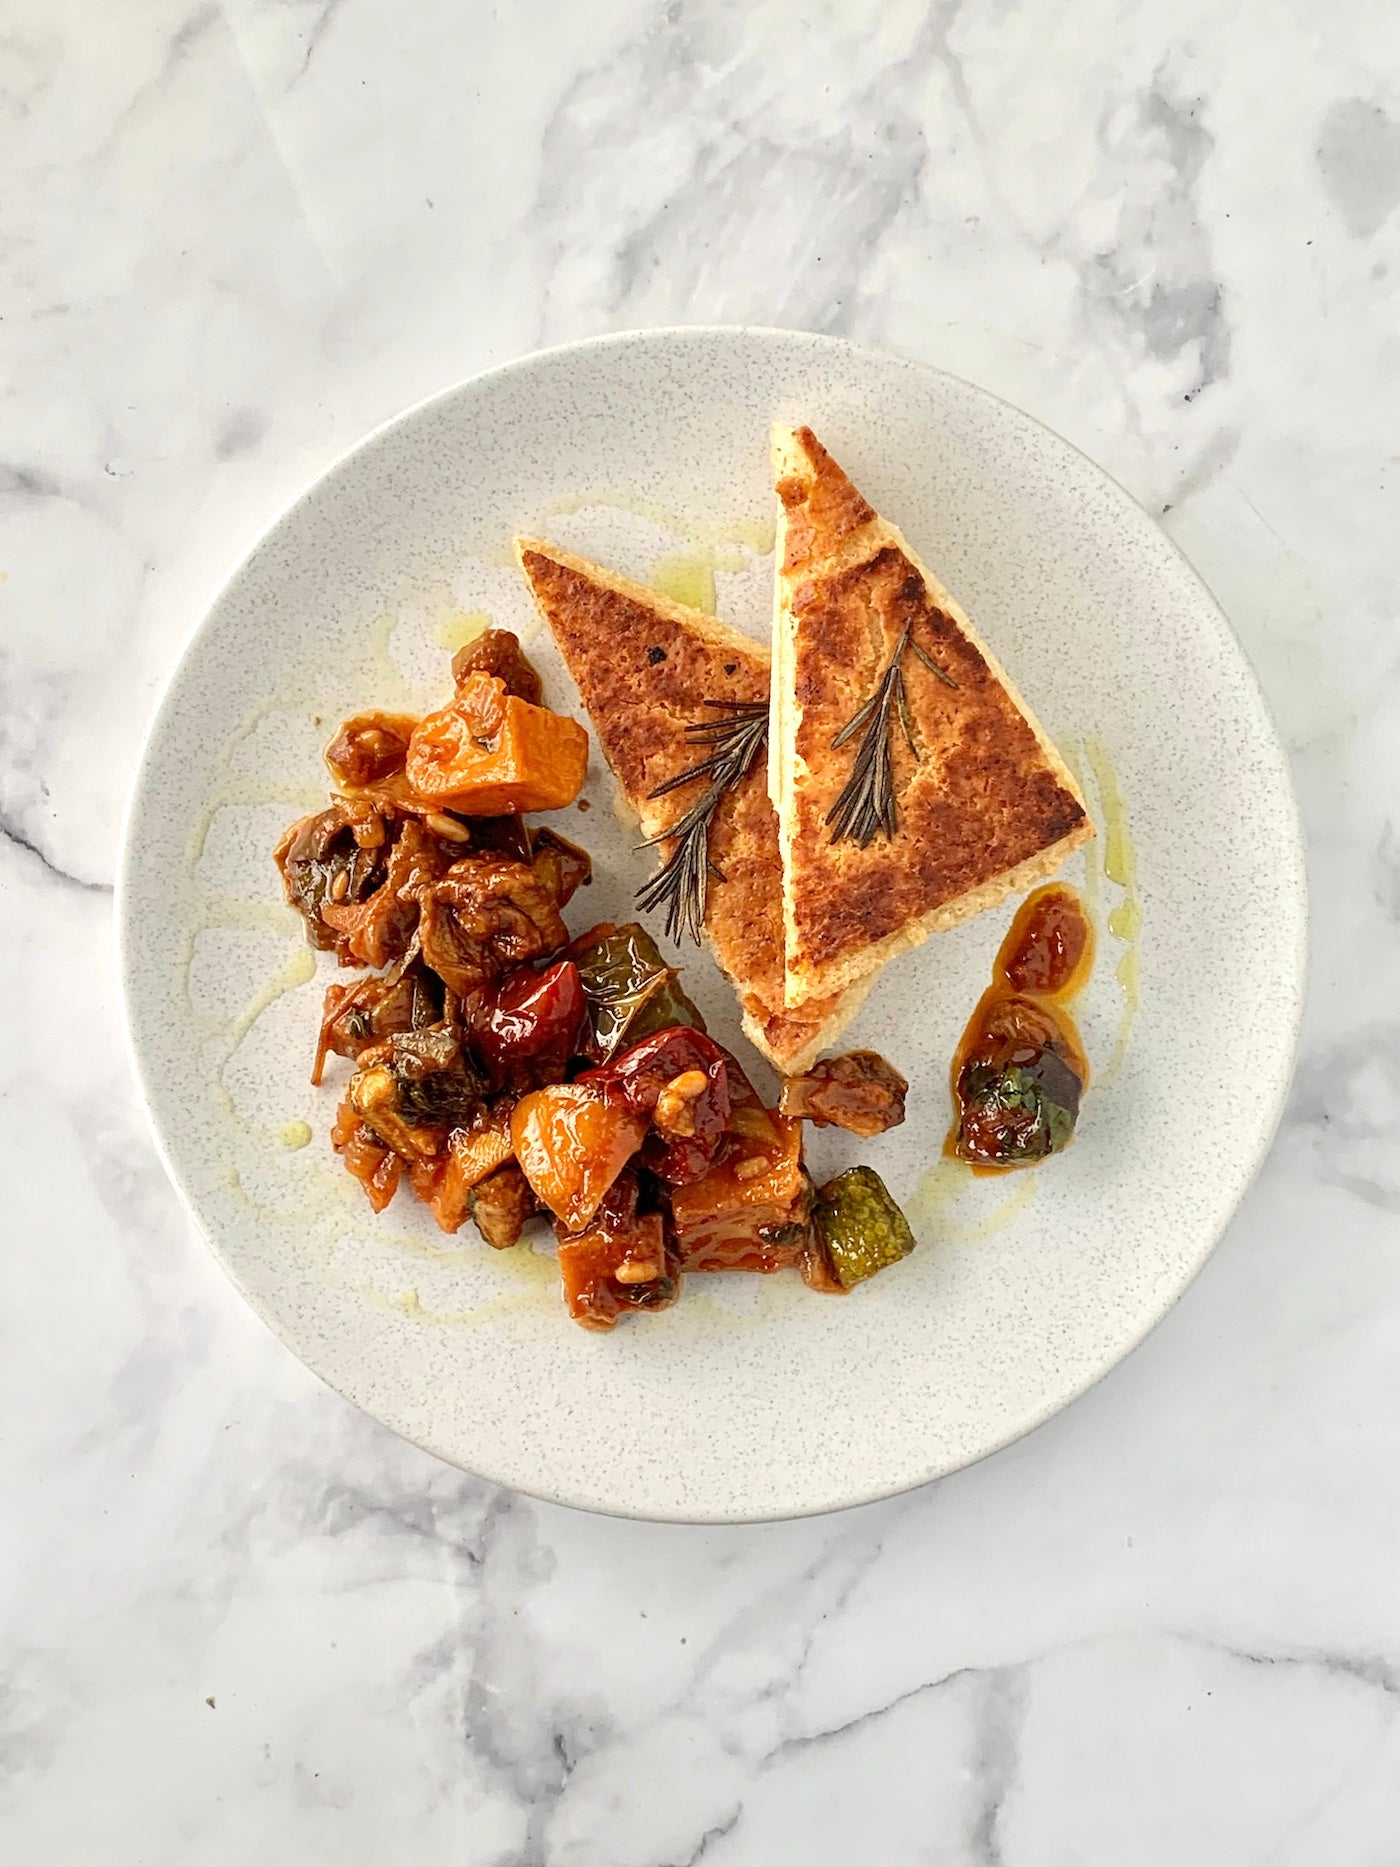 Sicilian Caponata & Sourdough